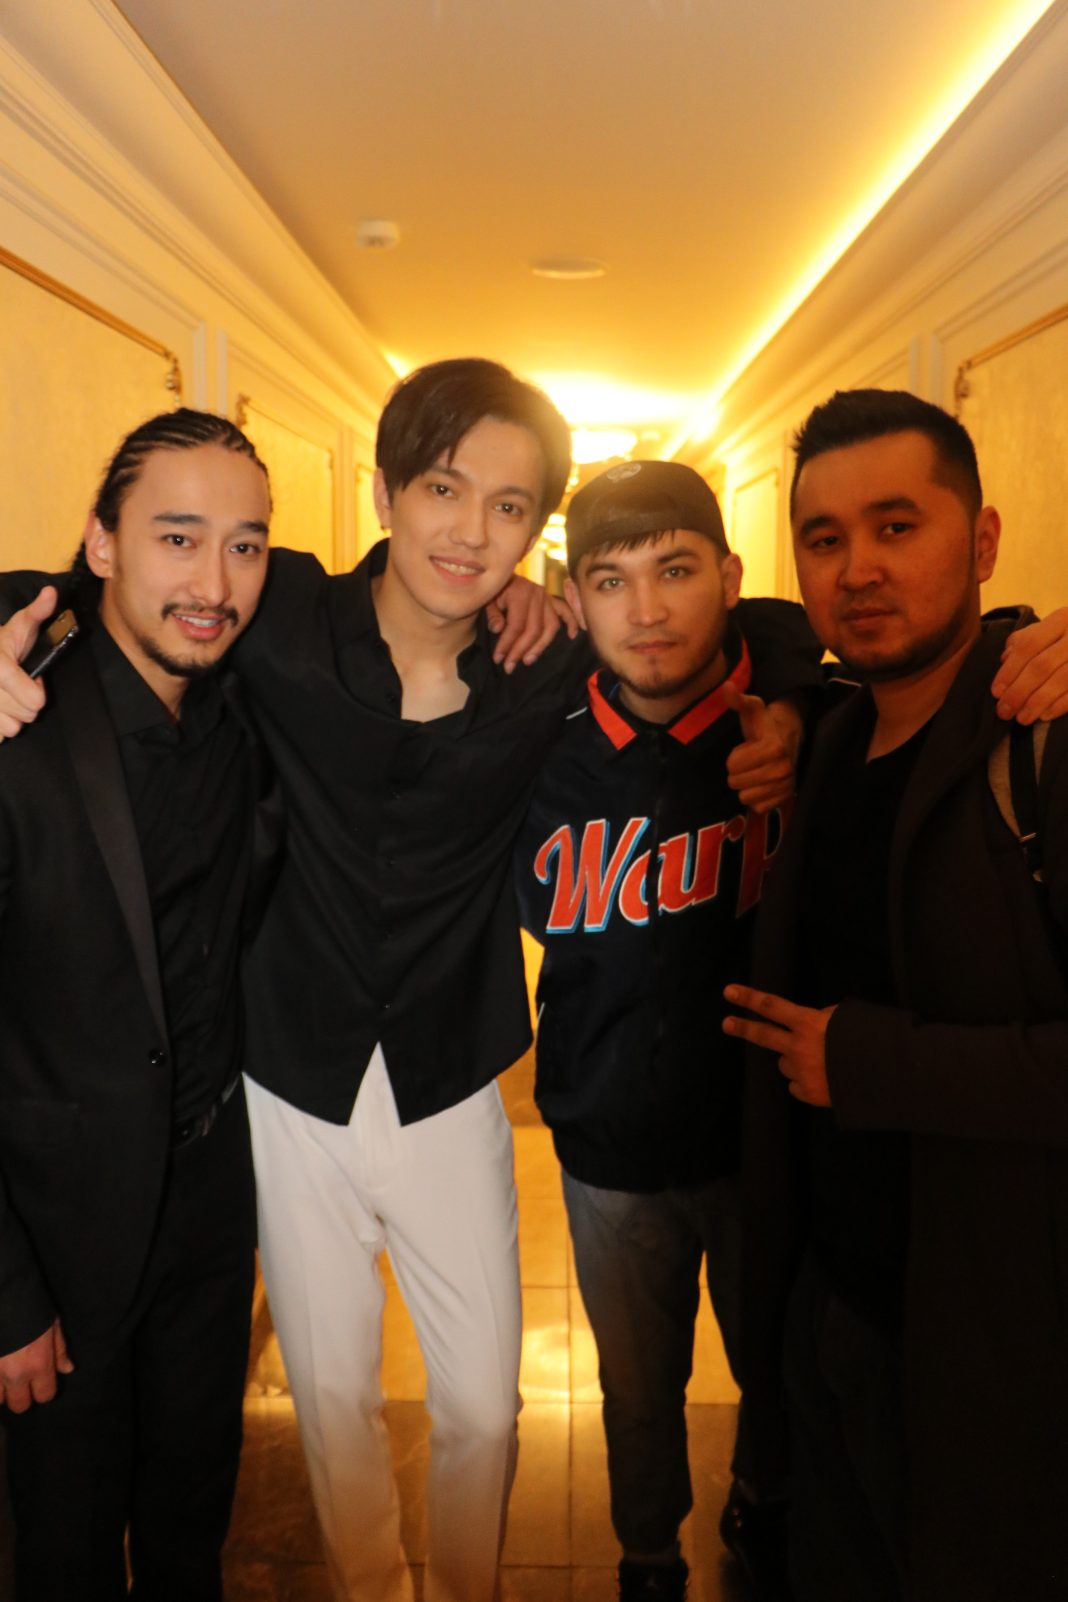 Singer and Actor: Dimash's backing vocalist Rasul Usmanov